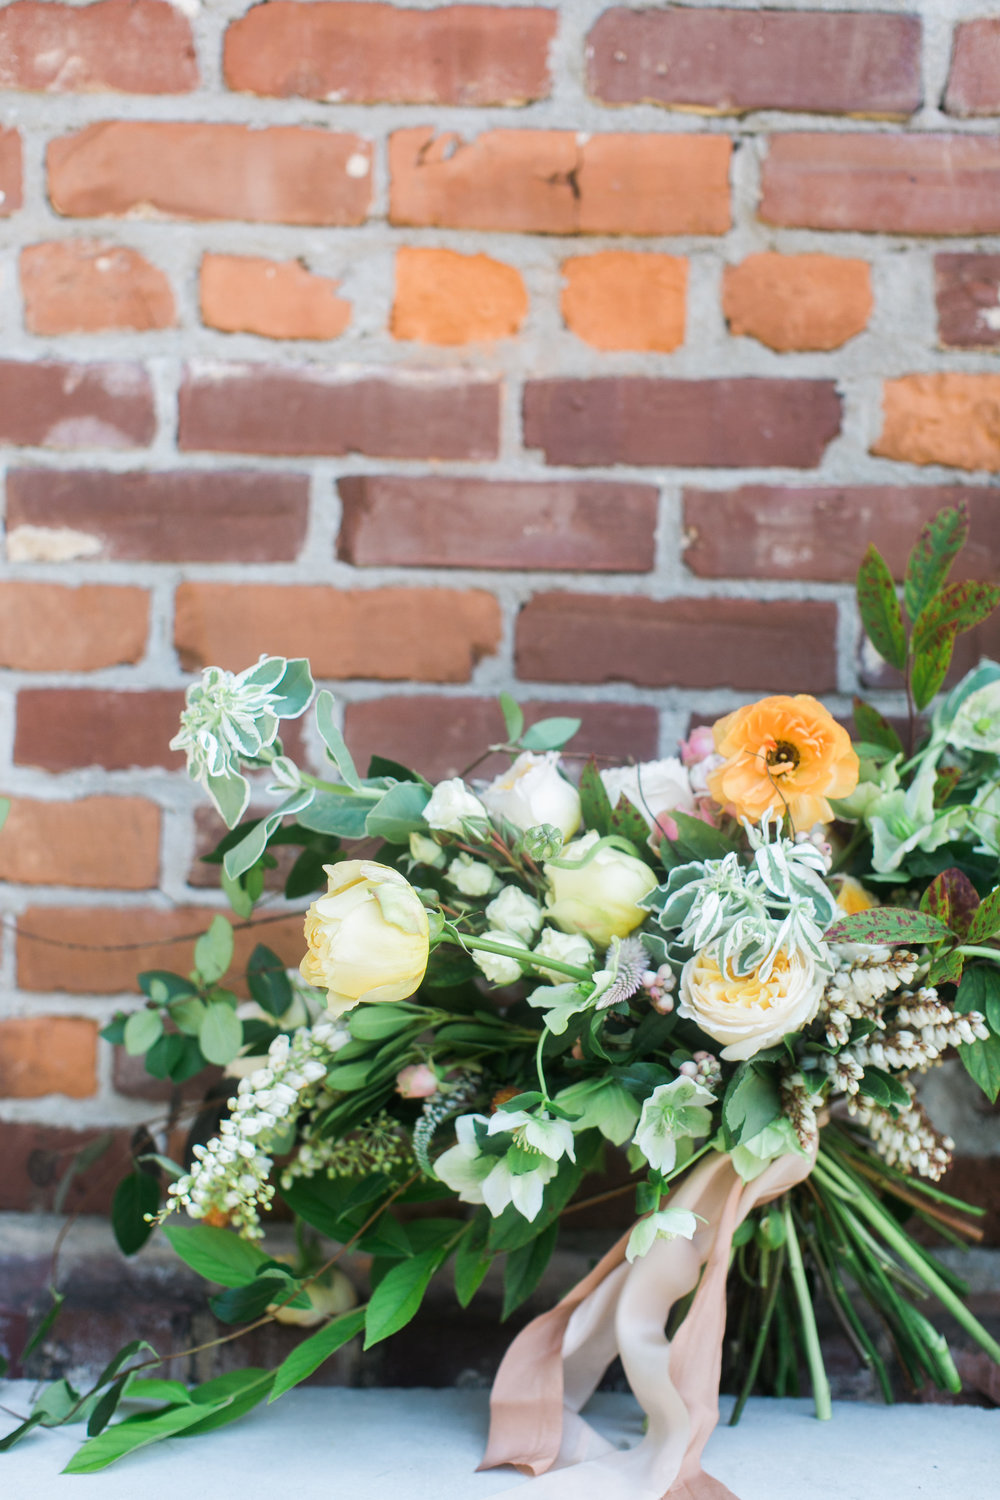 jessica-zimmerman-events-floral-event-design-coordination-planning-wedding-invitations-neutral-blush-organic-conway-arkansas-amy-osaba-events-organic-floral-white-tulips-greenery